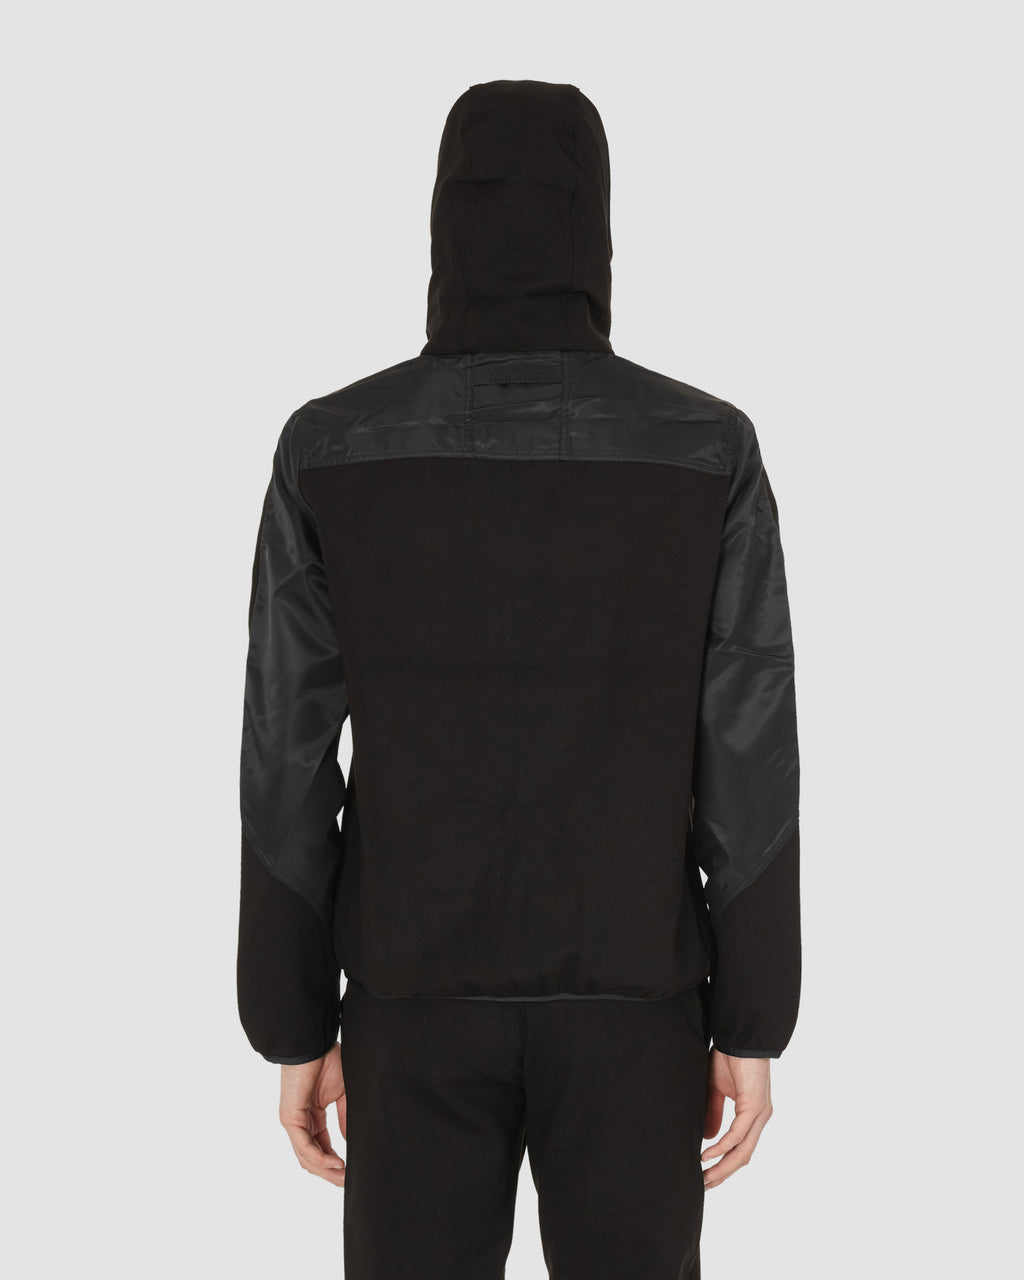 1017 ALYX 9SM | BLACK TECHNICAL HOODIE | Outerwear | BLACK, Google Shopping, Man, MEN, Outerwear, S20, S20EXSH